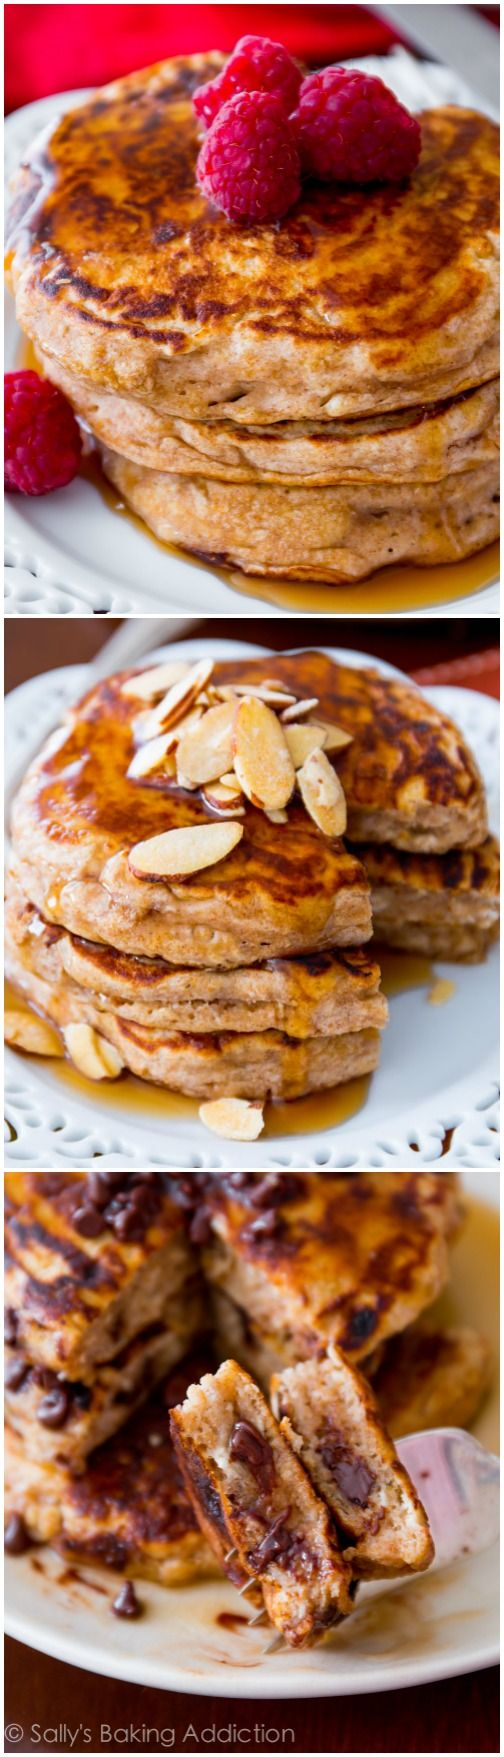 Whole Wheat Oatmeal Pancakes. - Sallys Baking Addiction